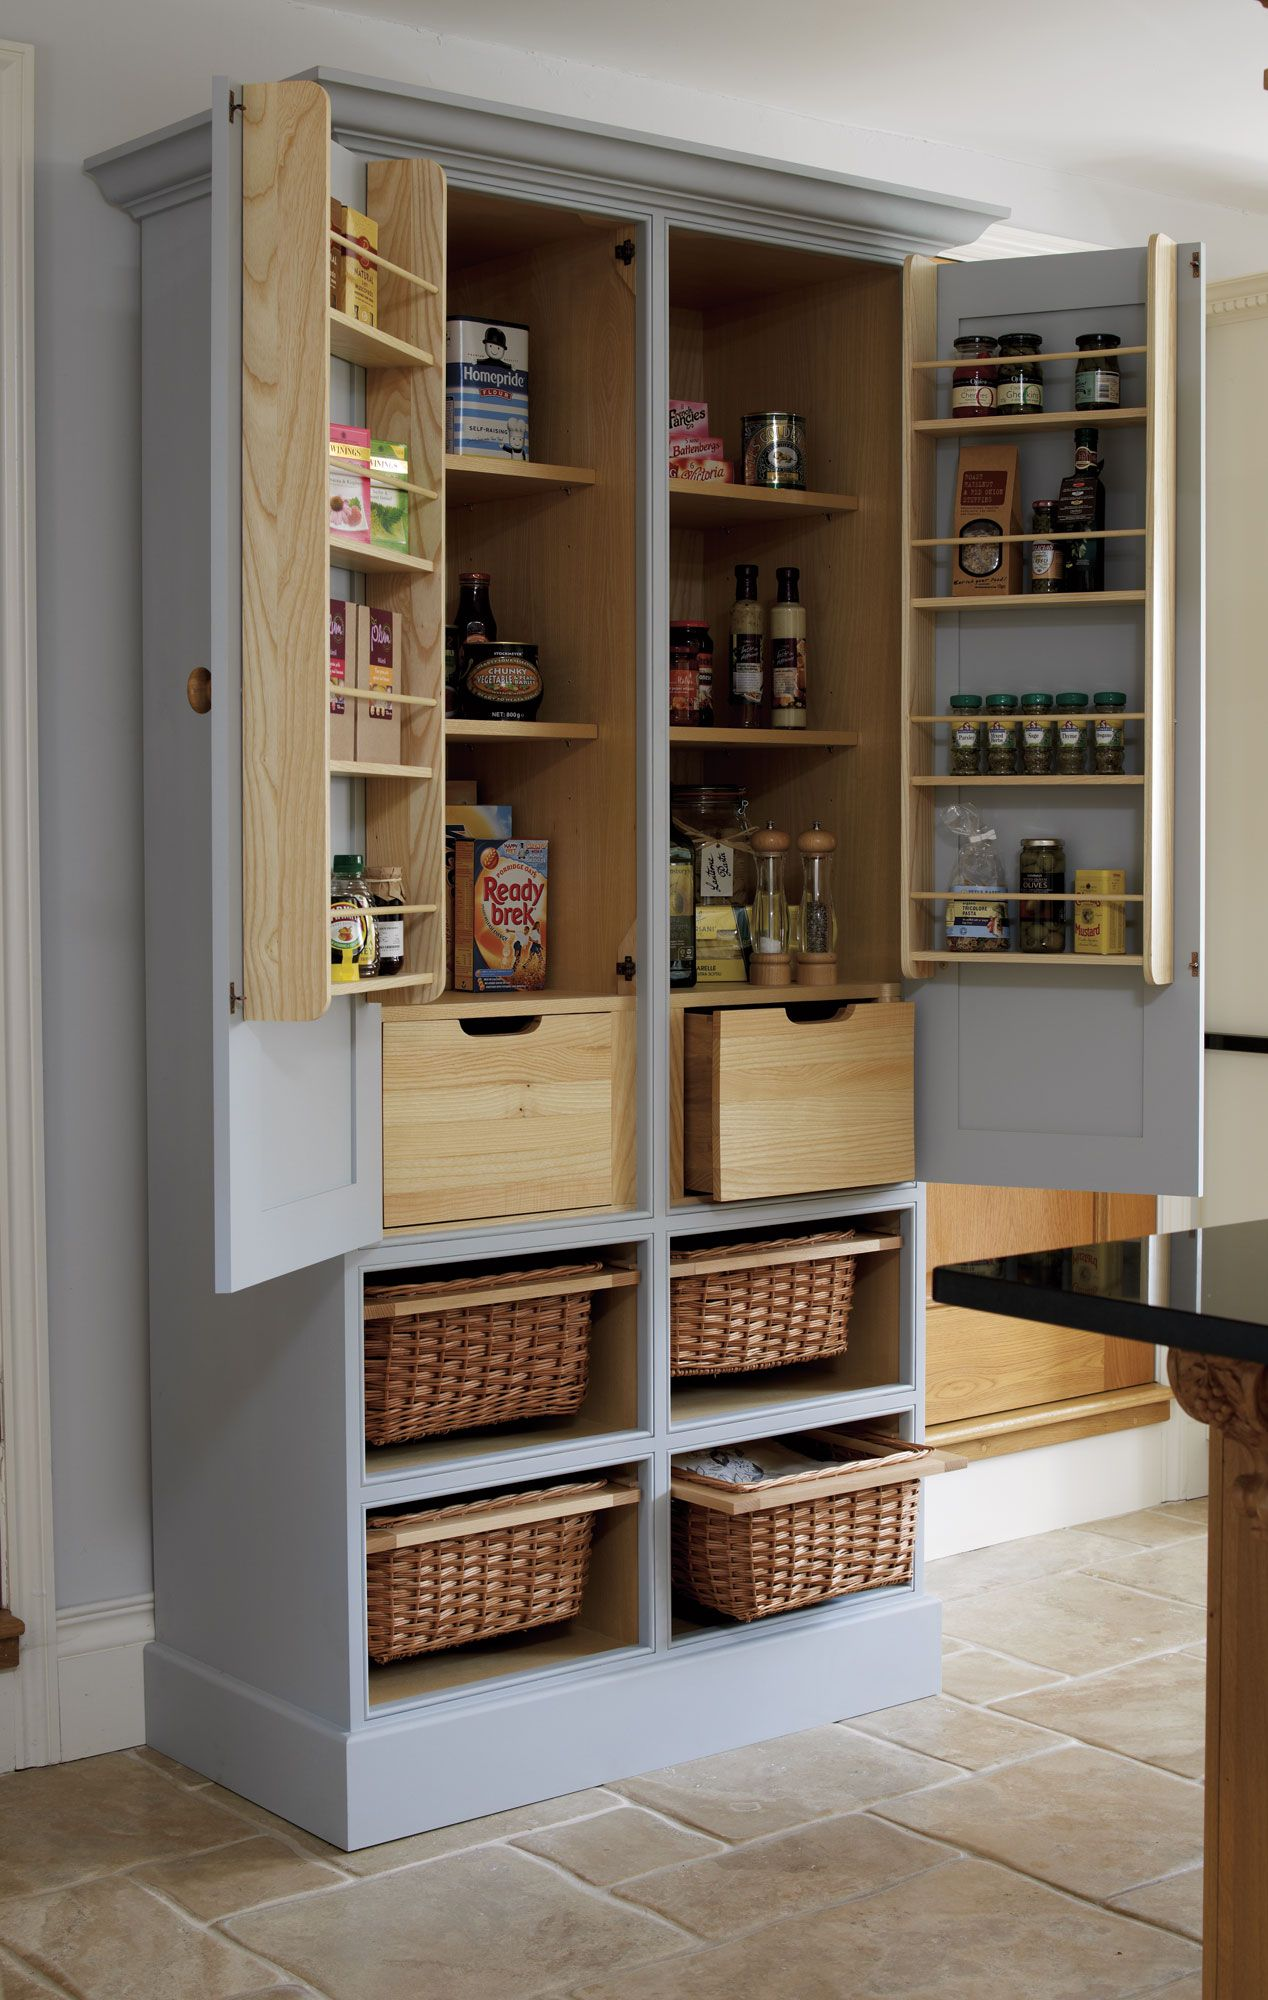 The Chic Technique Free Standing Kitchen Pantry You Could Make Something Like It From A Tv Armoire Or Other Wood Cabinet You No Longer Use